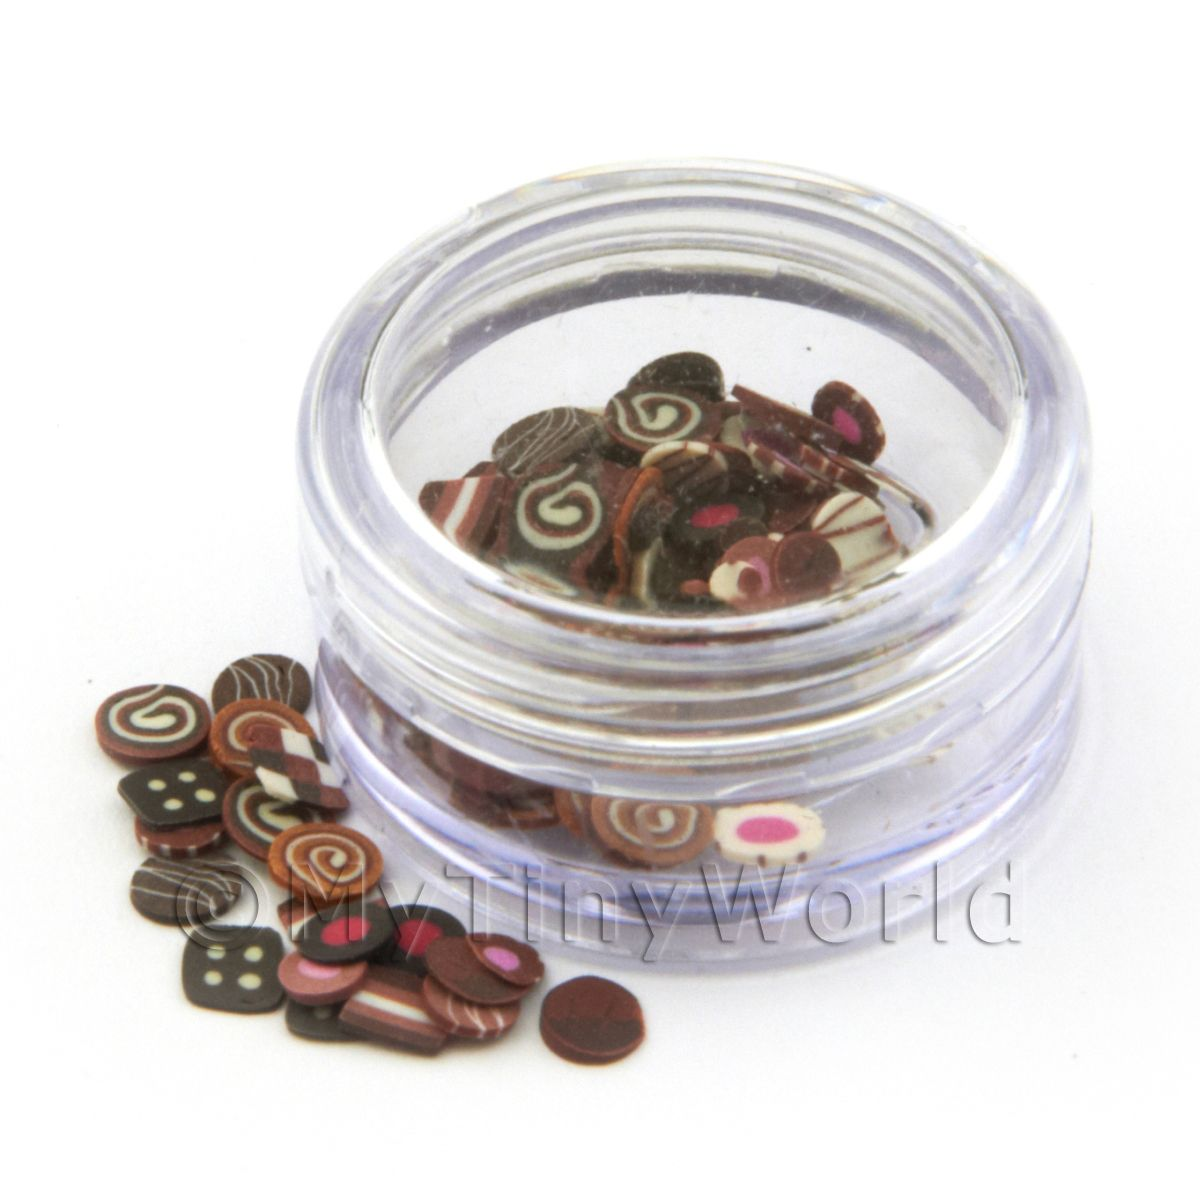 Mixed Chocolate Nail Art Pot Containing 120 Slices